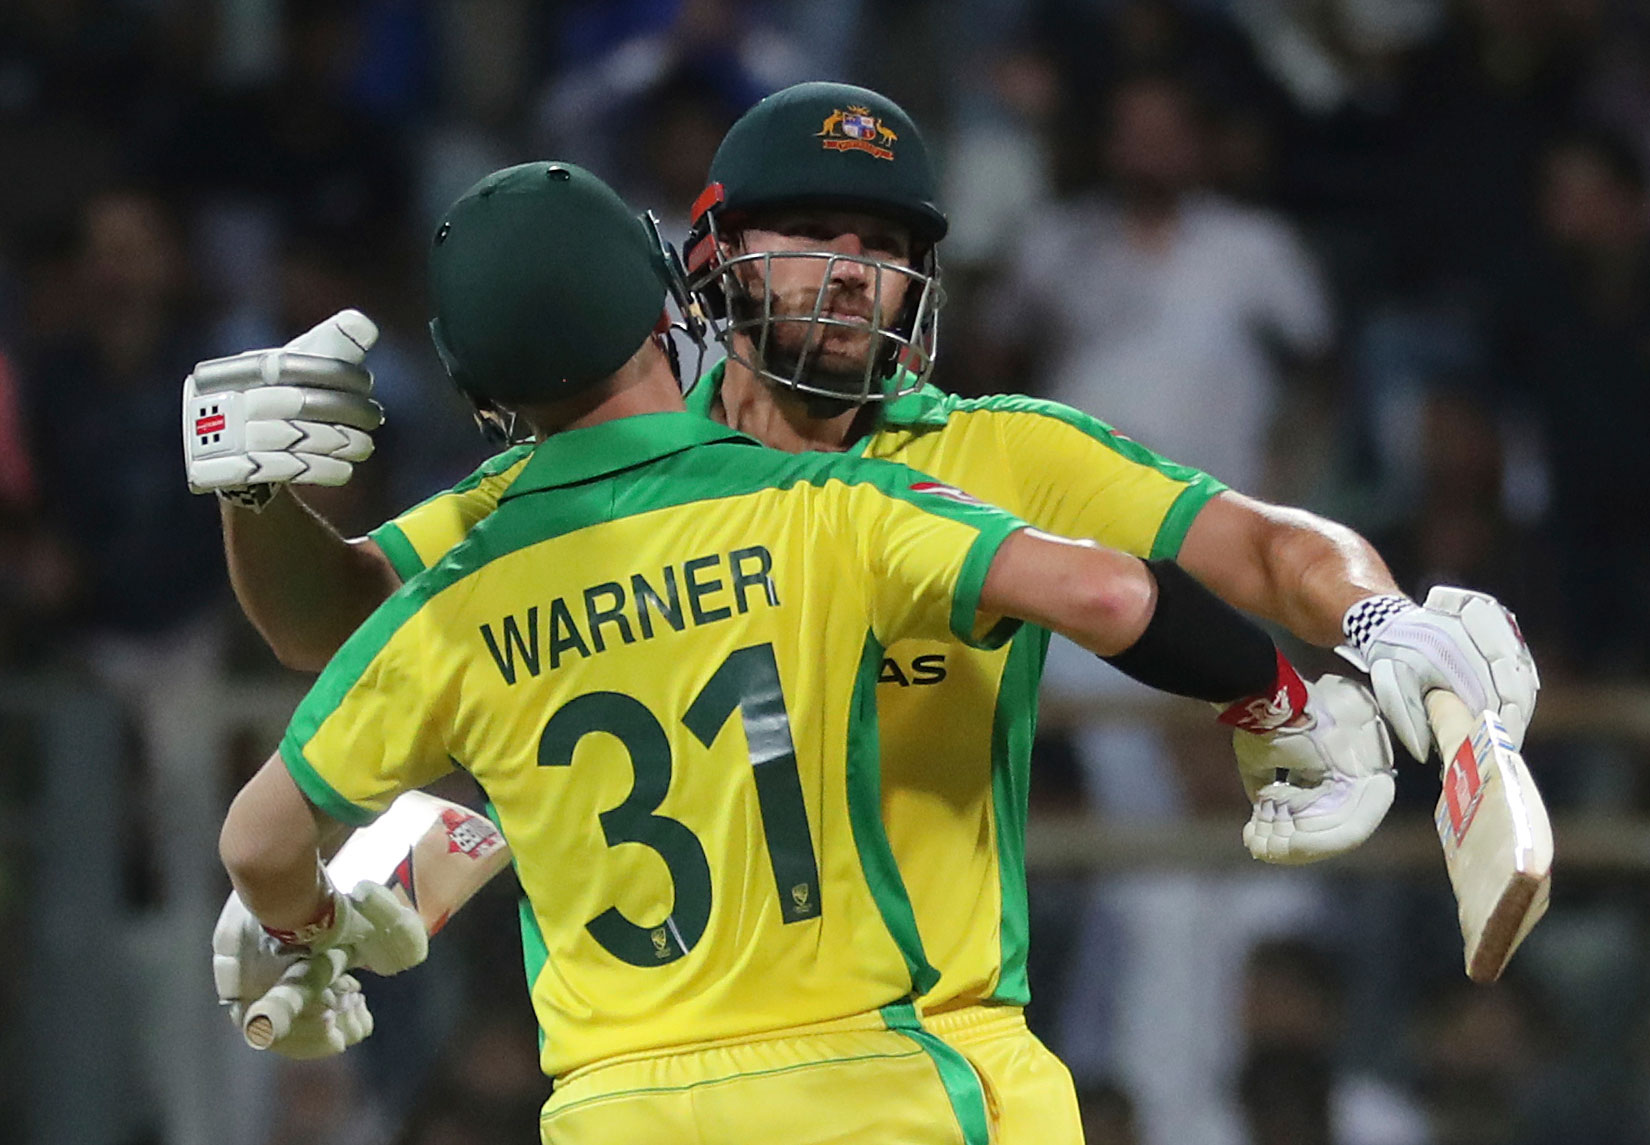 Australia's captain Aaron Finch greets David Warner after they won the match against India during the first one-day international cricket match between India and Australia in Mumbai, India on Tuesday